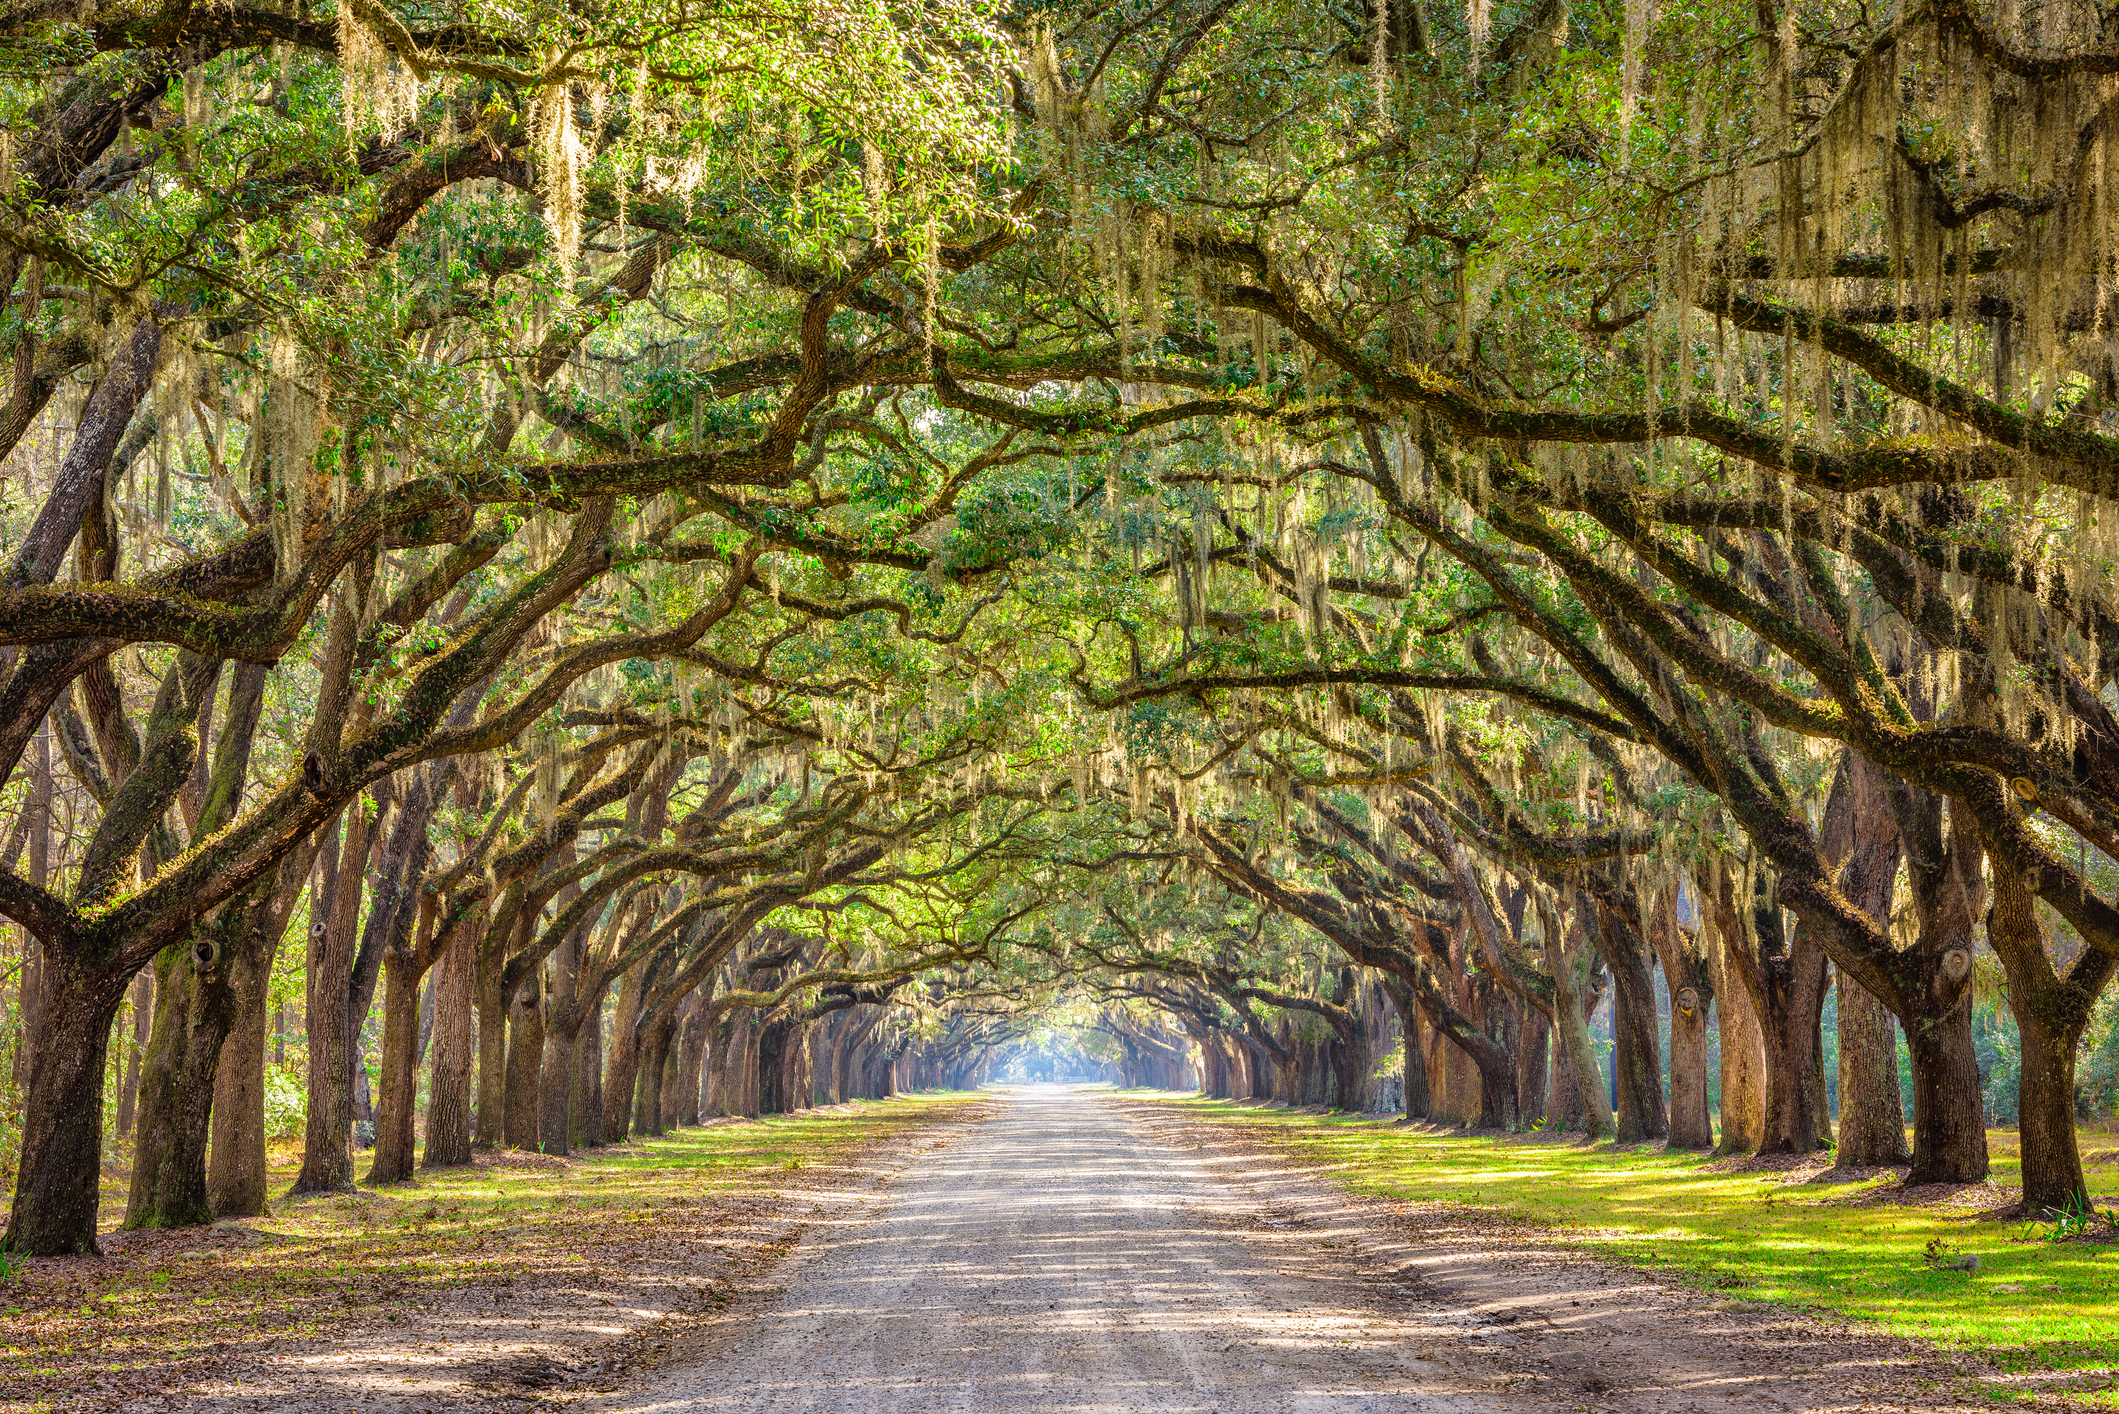 """Enjoy beautiful surroundings and all the charm that the south has to offer. So pack your bags and like Mr. Charles said, """"Hit the Road Jack"""" and head on down to Georgia!"""